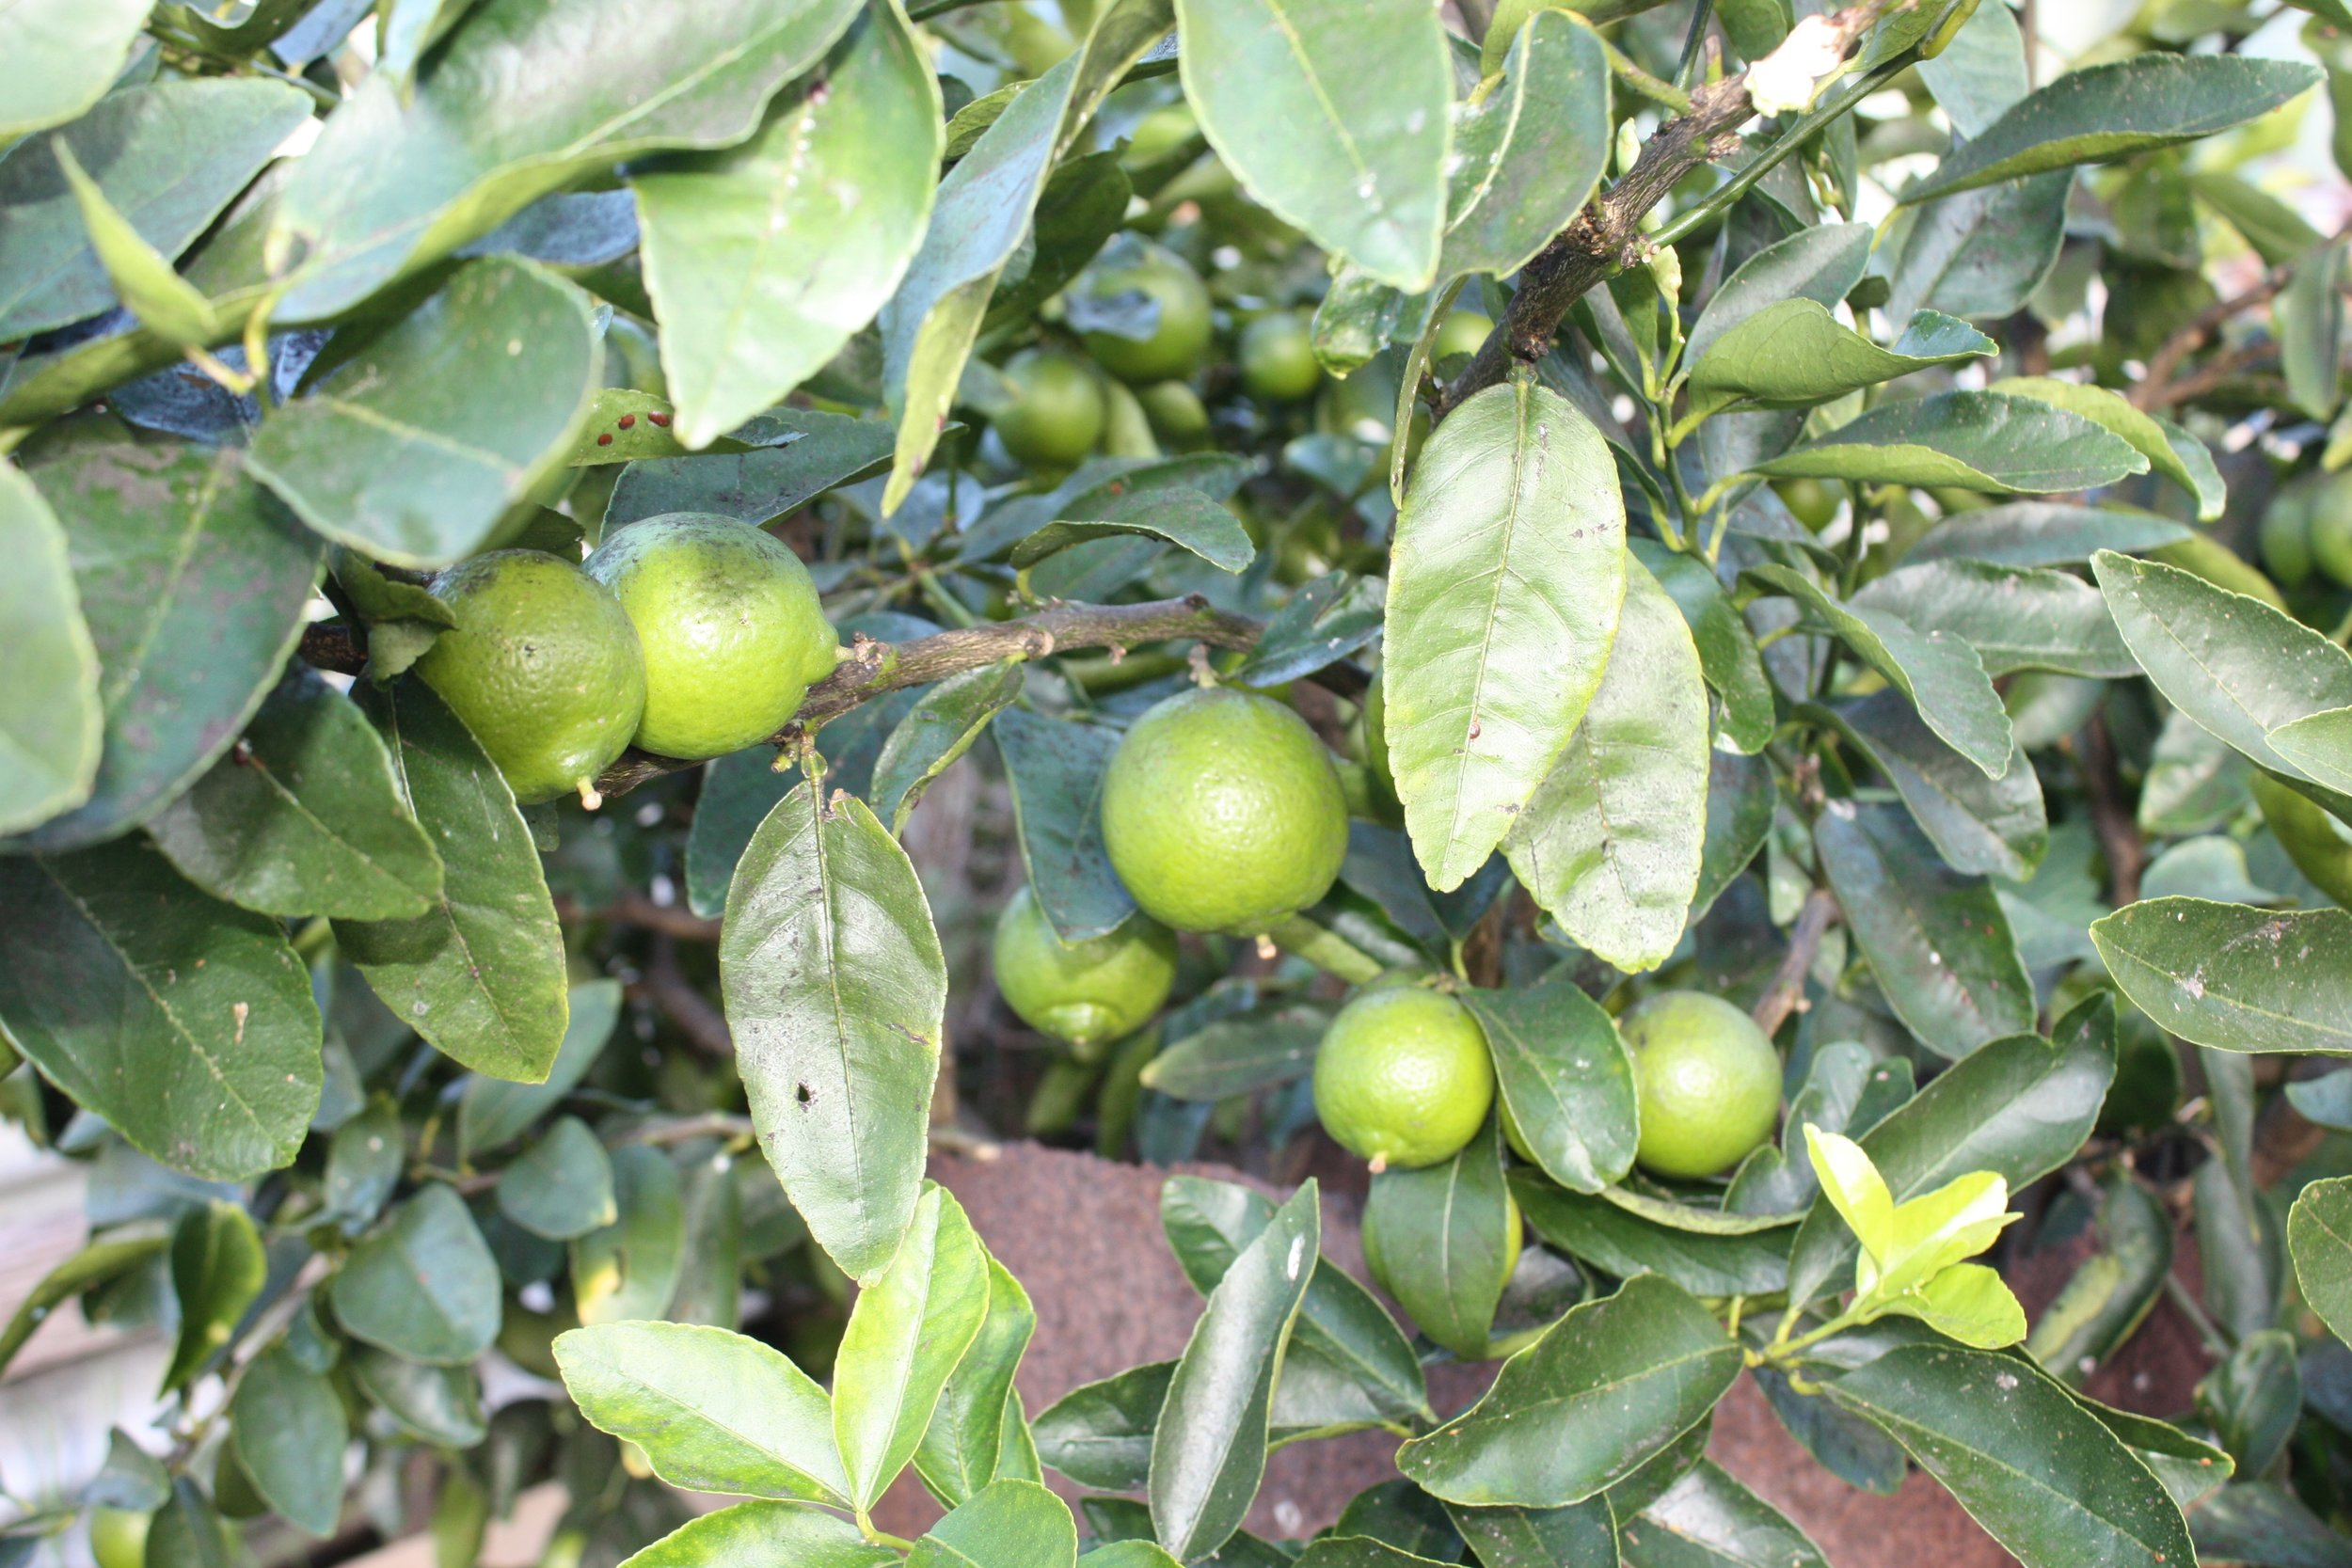 Limes in the garden growing abundantly with oranges, grapefruit, cumquats and four varieties of lemons.